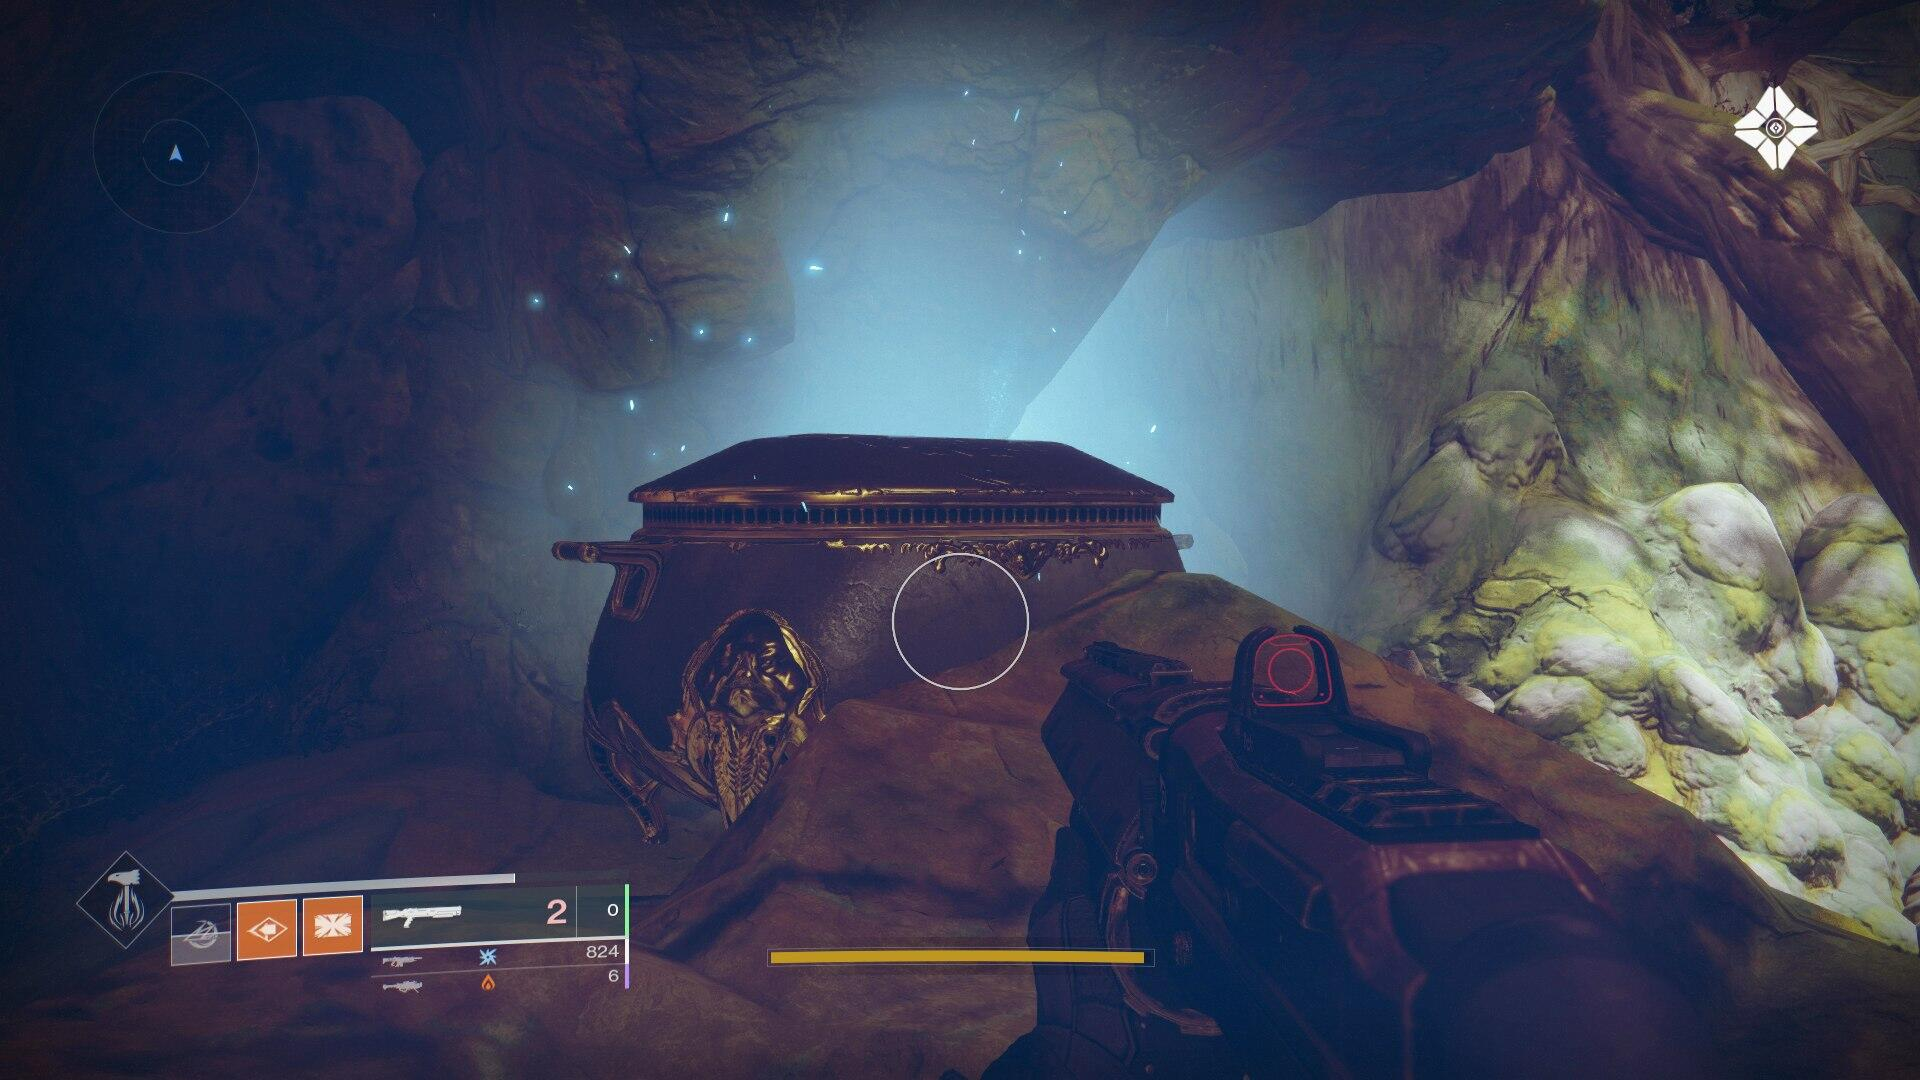 Destiny 2 Imperial Treasure Map Locations - How to Find the Io, Mars